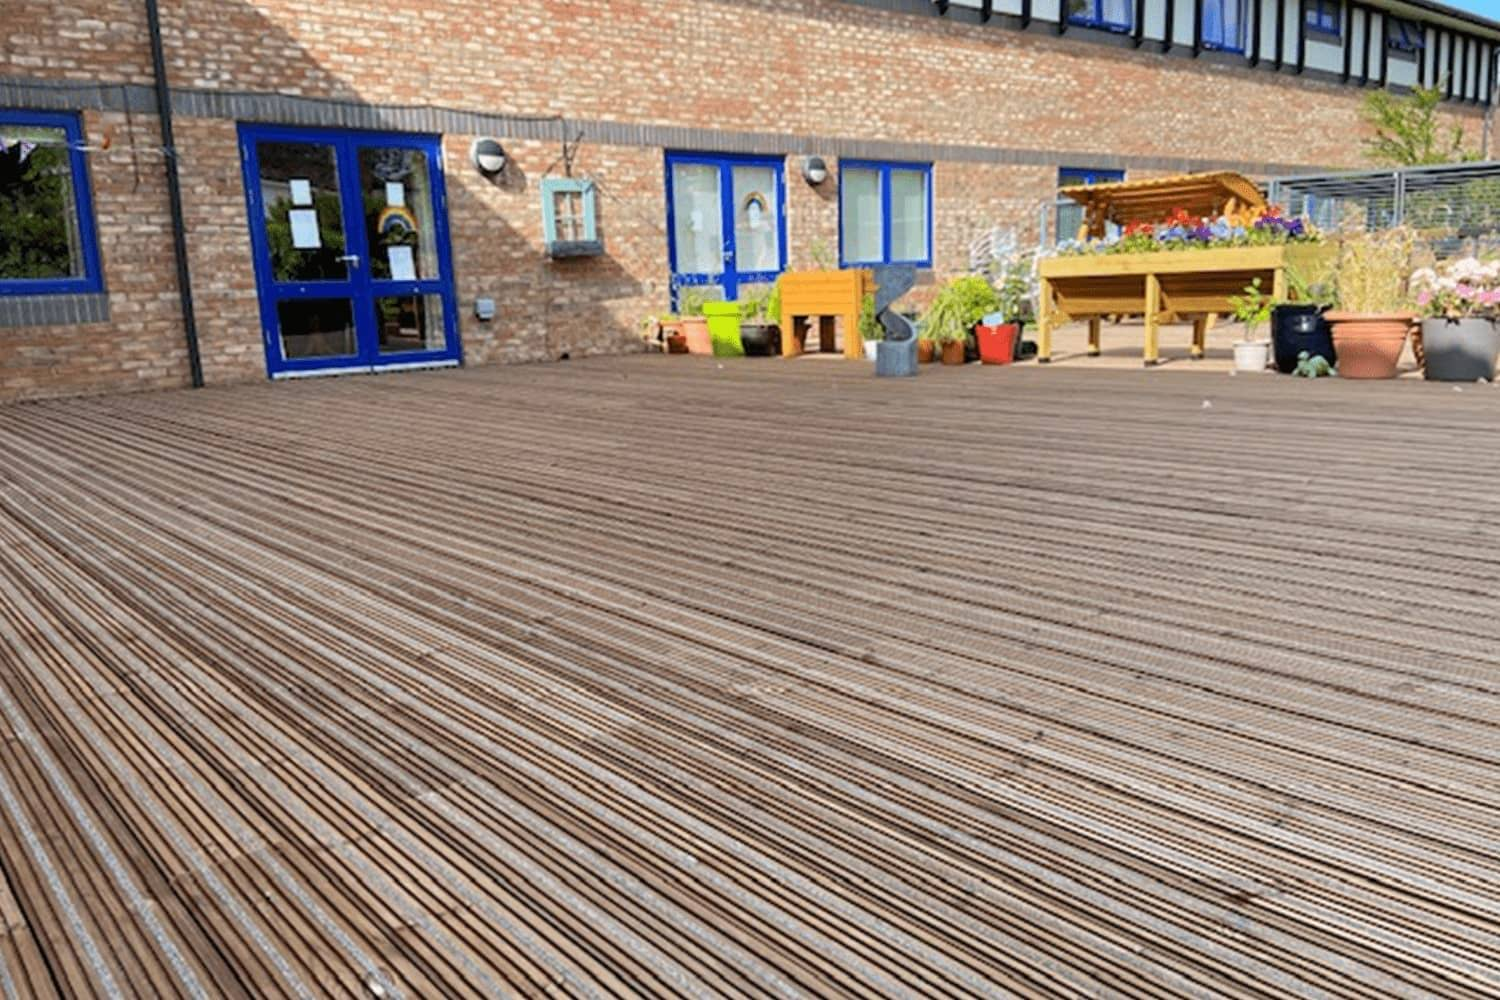 Non-Slip Decking Area at Hospital